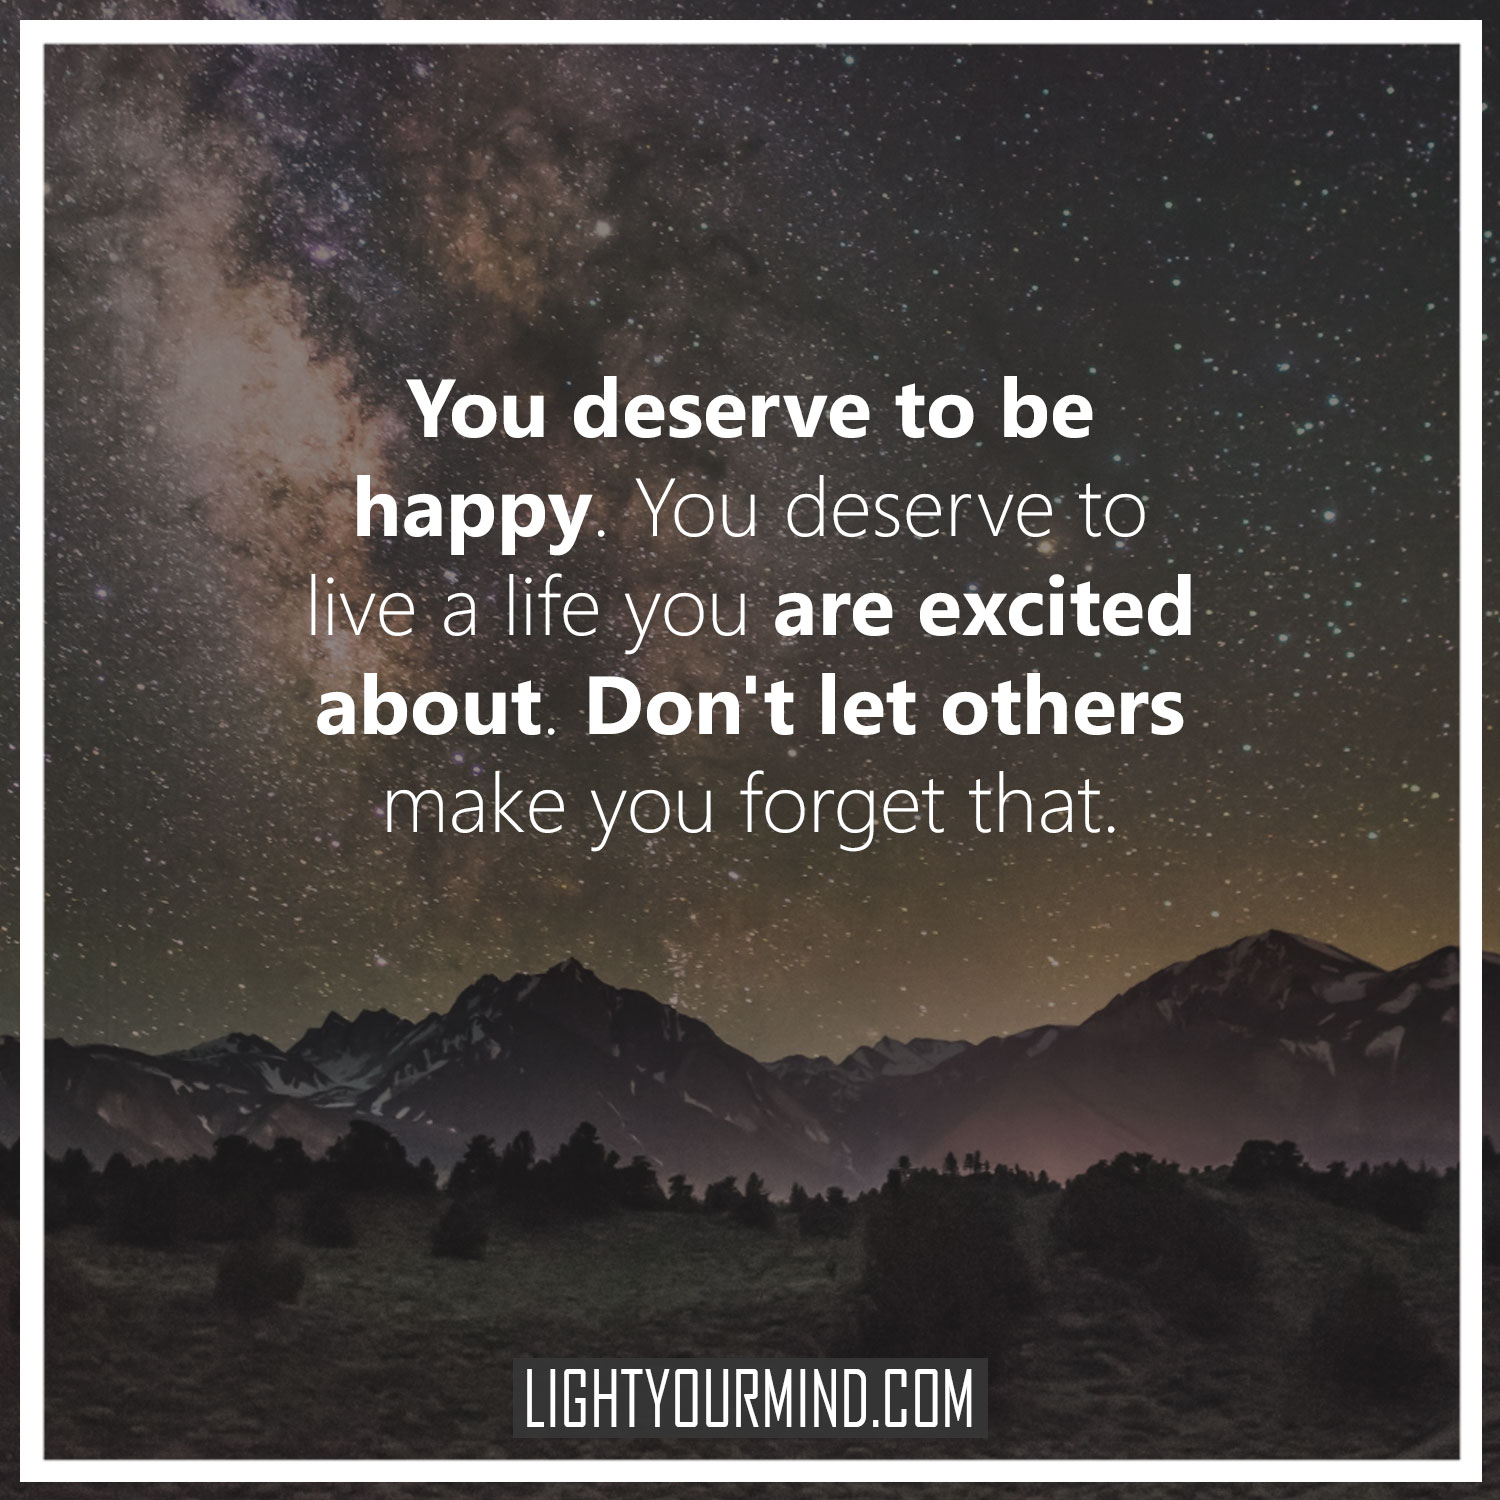 [Image] don't let others make you forget your life